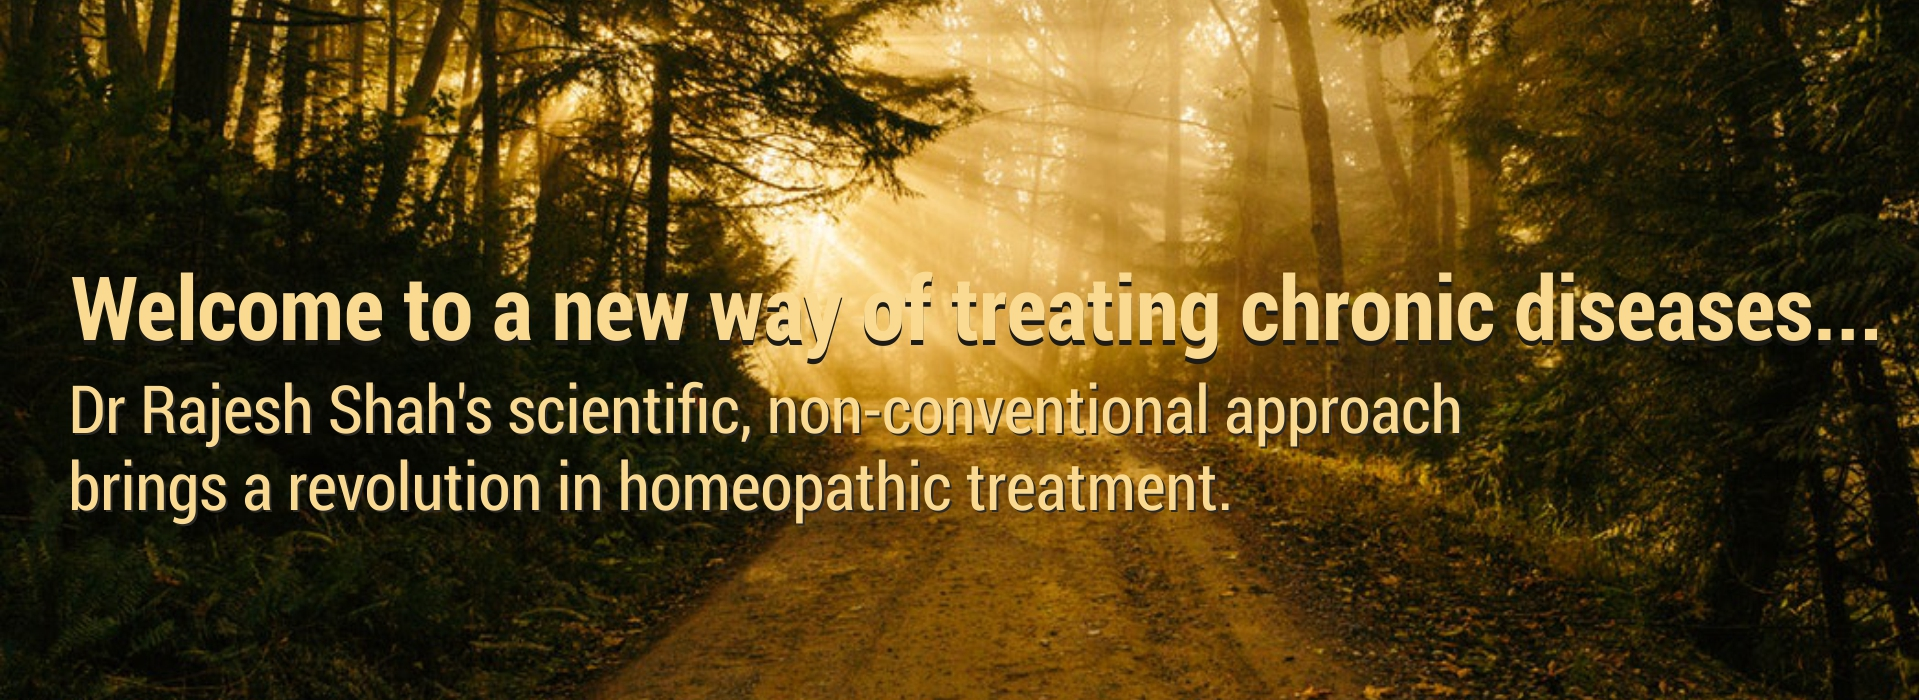 Homeopathy Clinic for Treatment of Skin Diseases in Mumbai